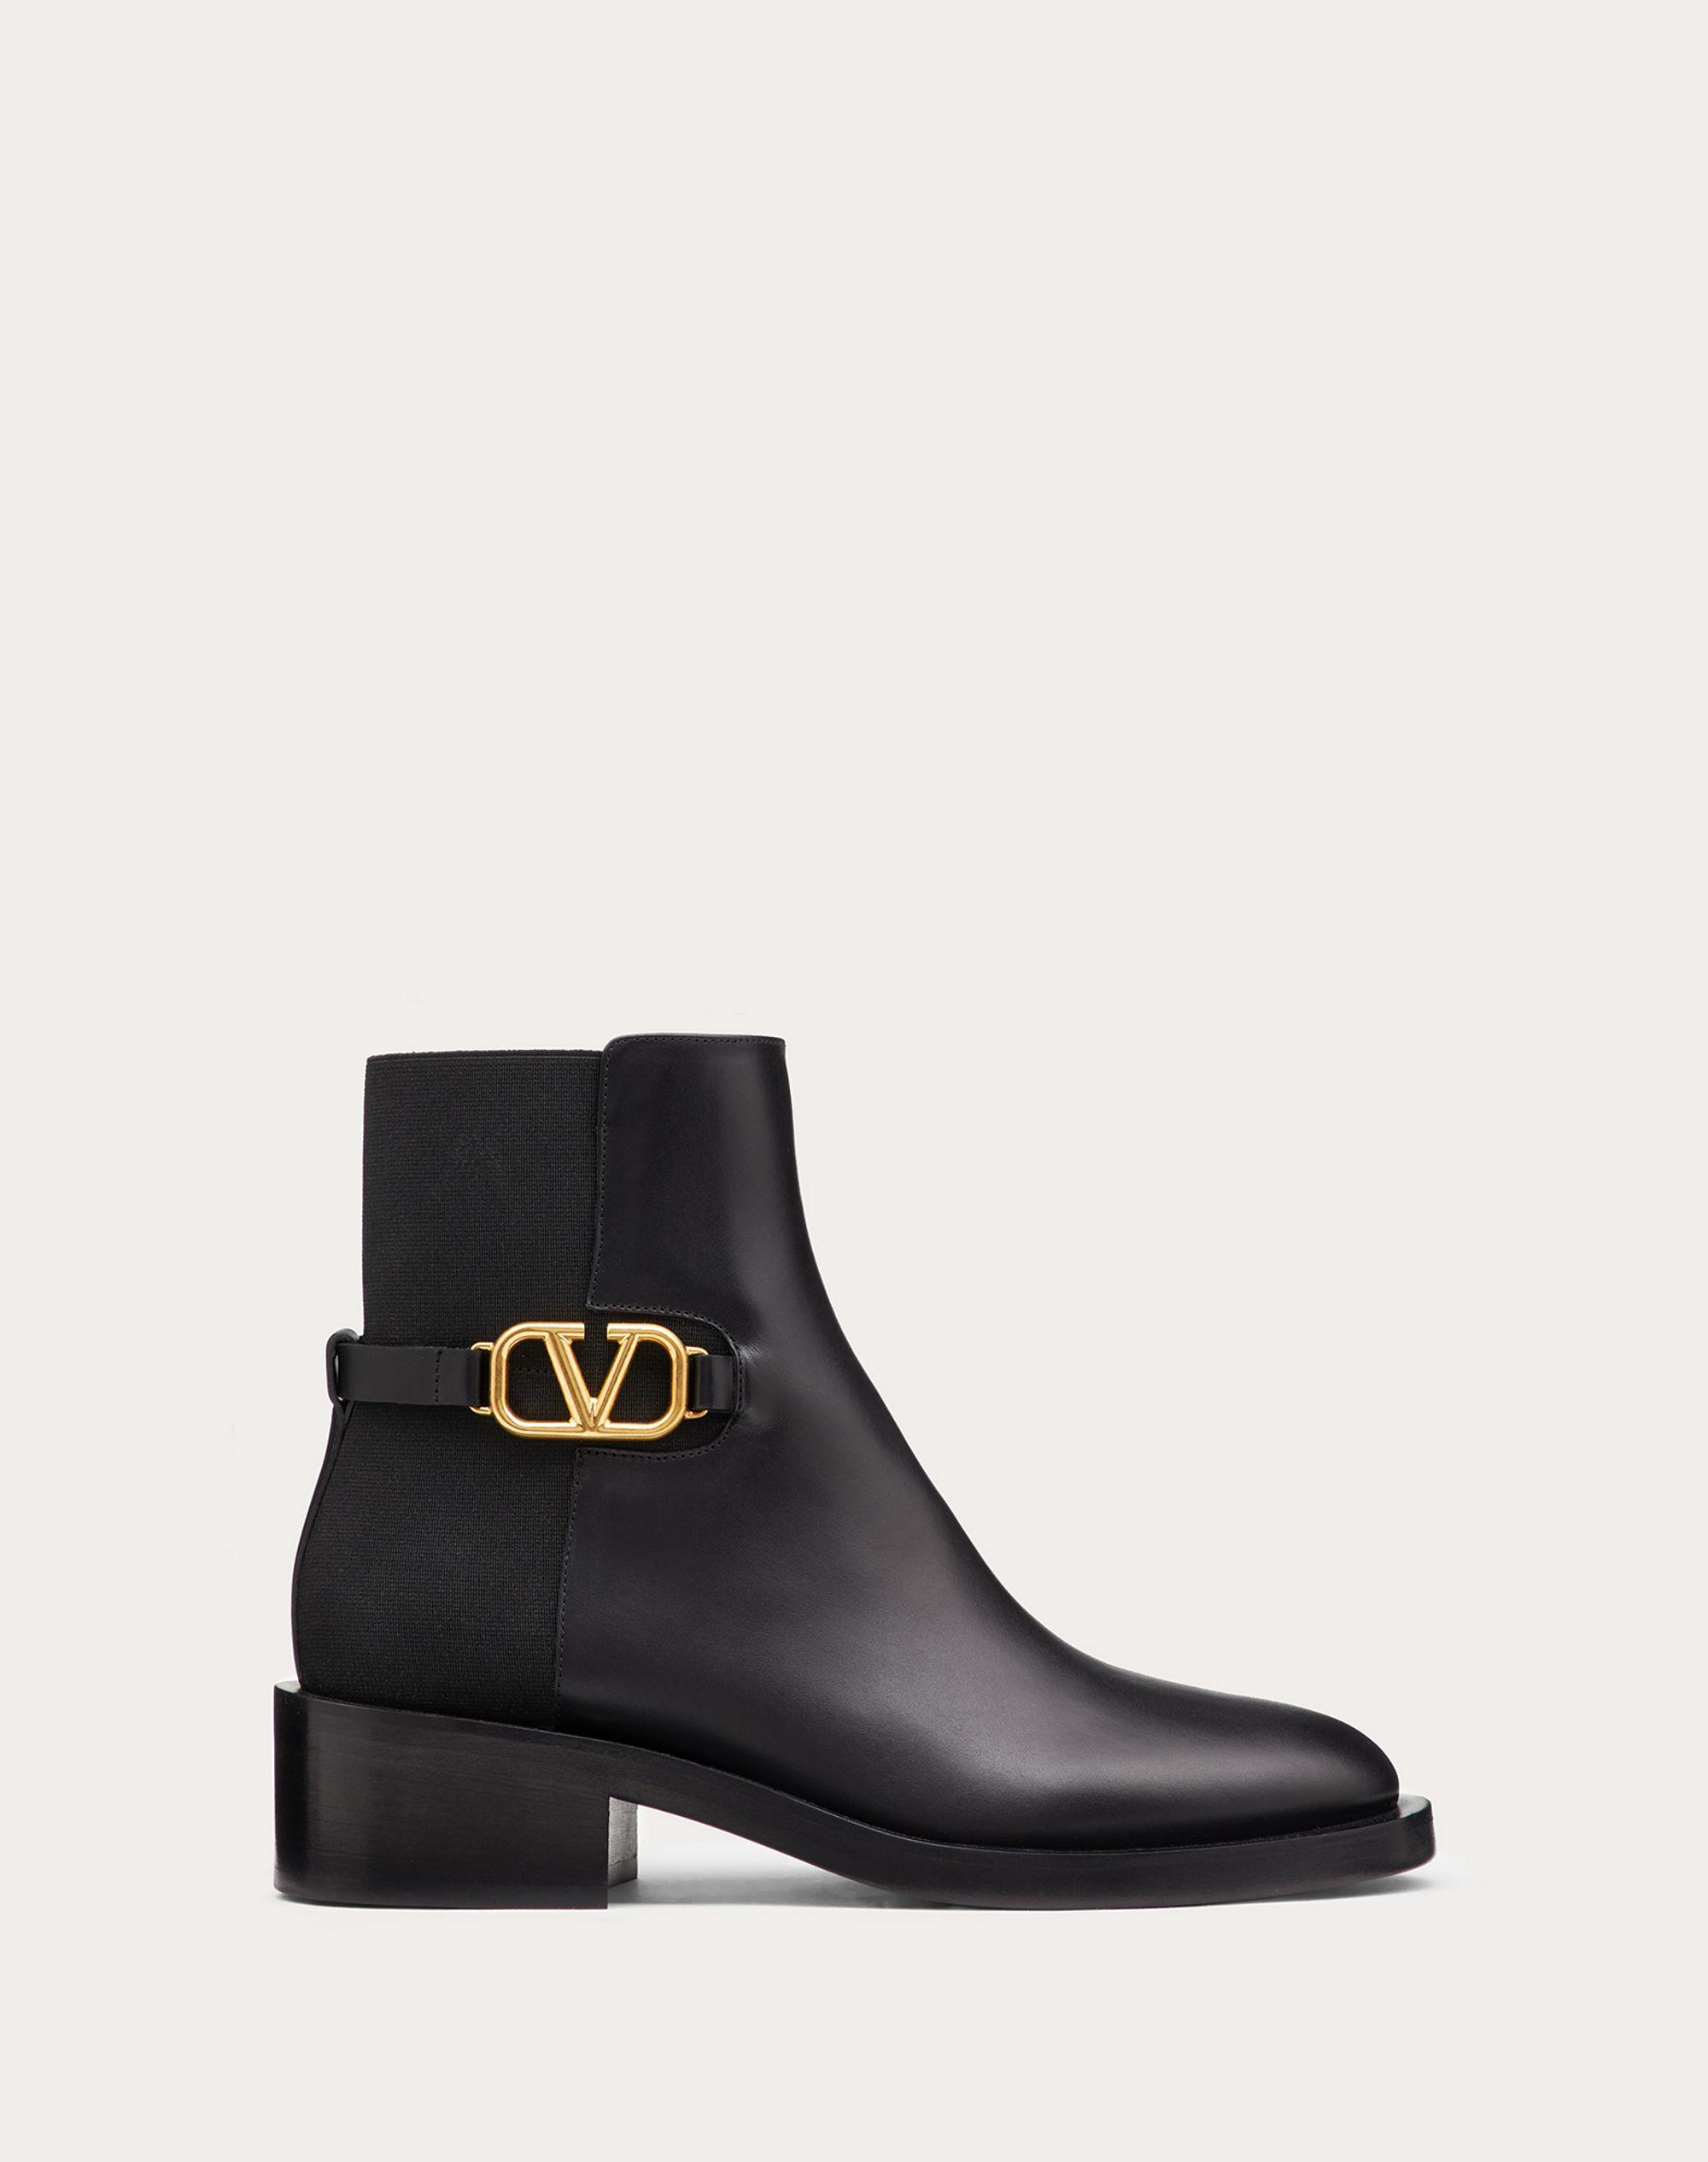 VLOGO SIGNATURE CALFSKIN ANKLE BOOT 30MM